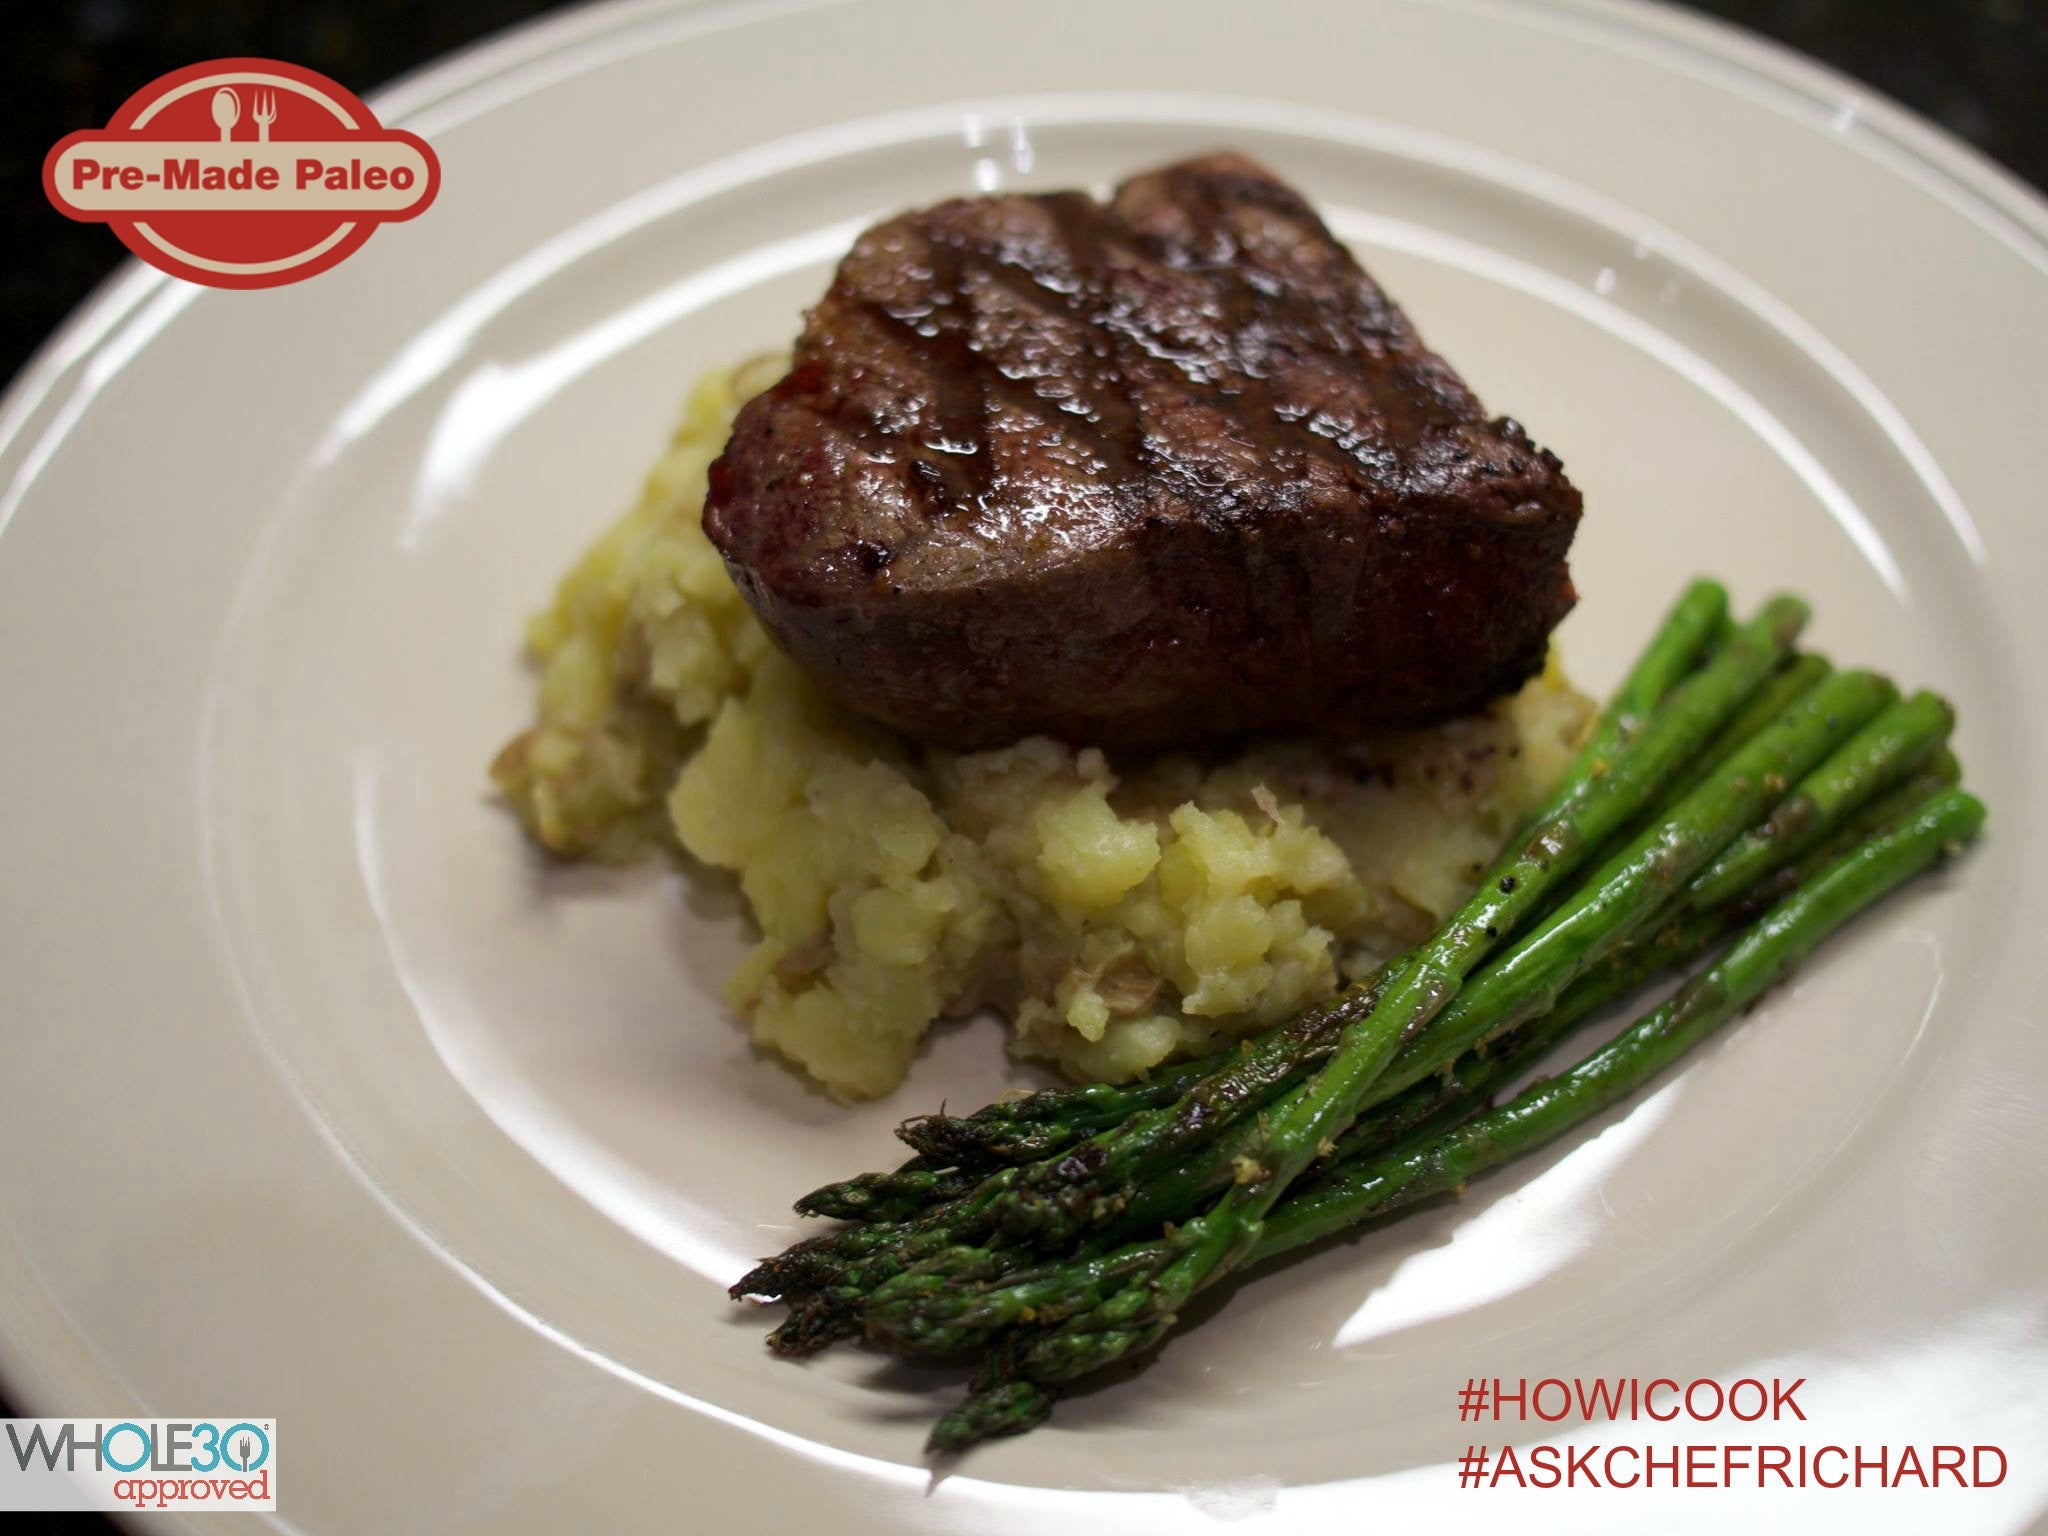 #HOWICOOK Recipe - Filet of Beef with Garlic Mashed Potatoes and Lemon Grilled Asparagus